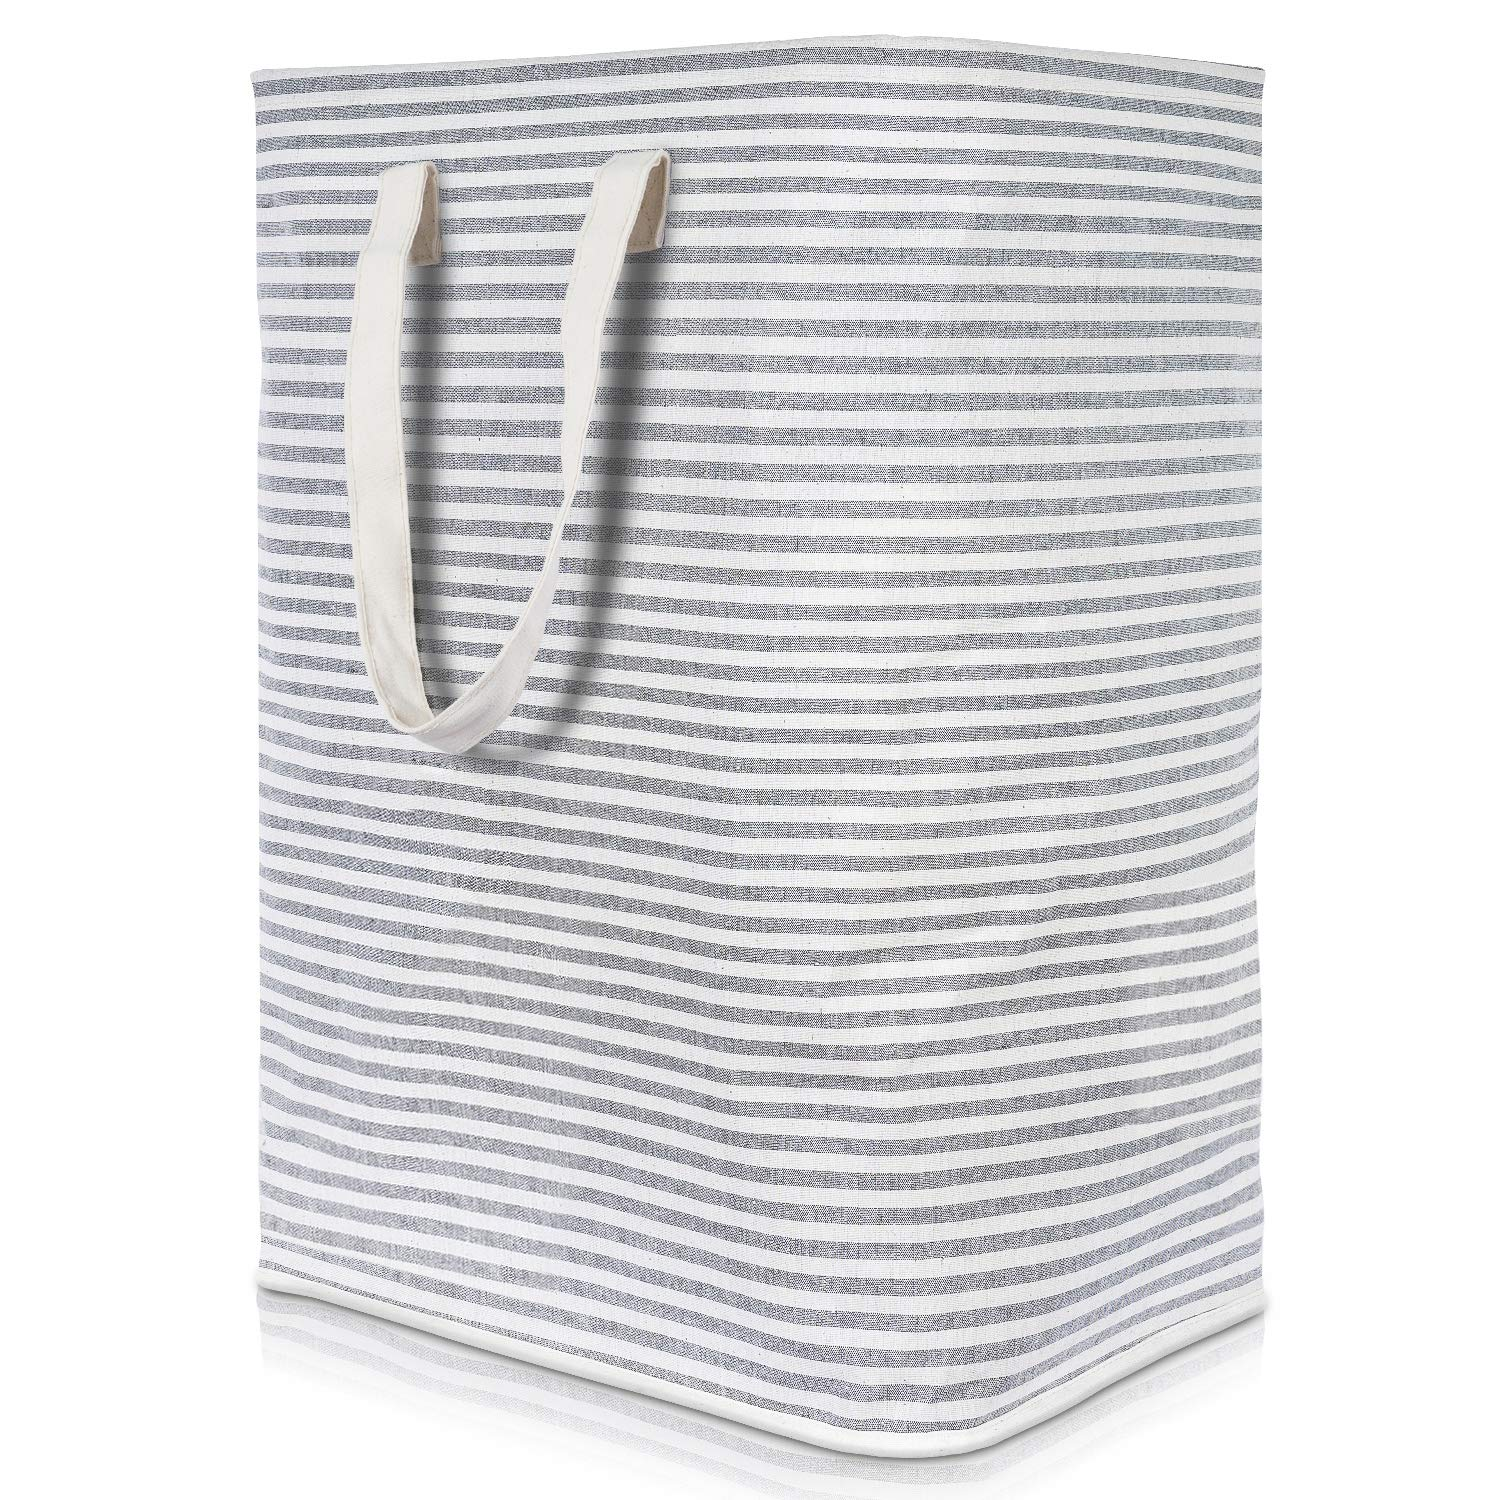 Lifewit 23.6'' Freestanding Laundry Hamper Clothes Hamper Large Basket with Extended Handles to Storage Clothes Toys for Bedroom, Bathroom, Foldable, Grey